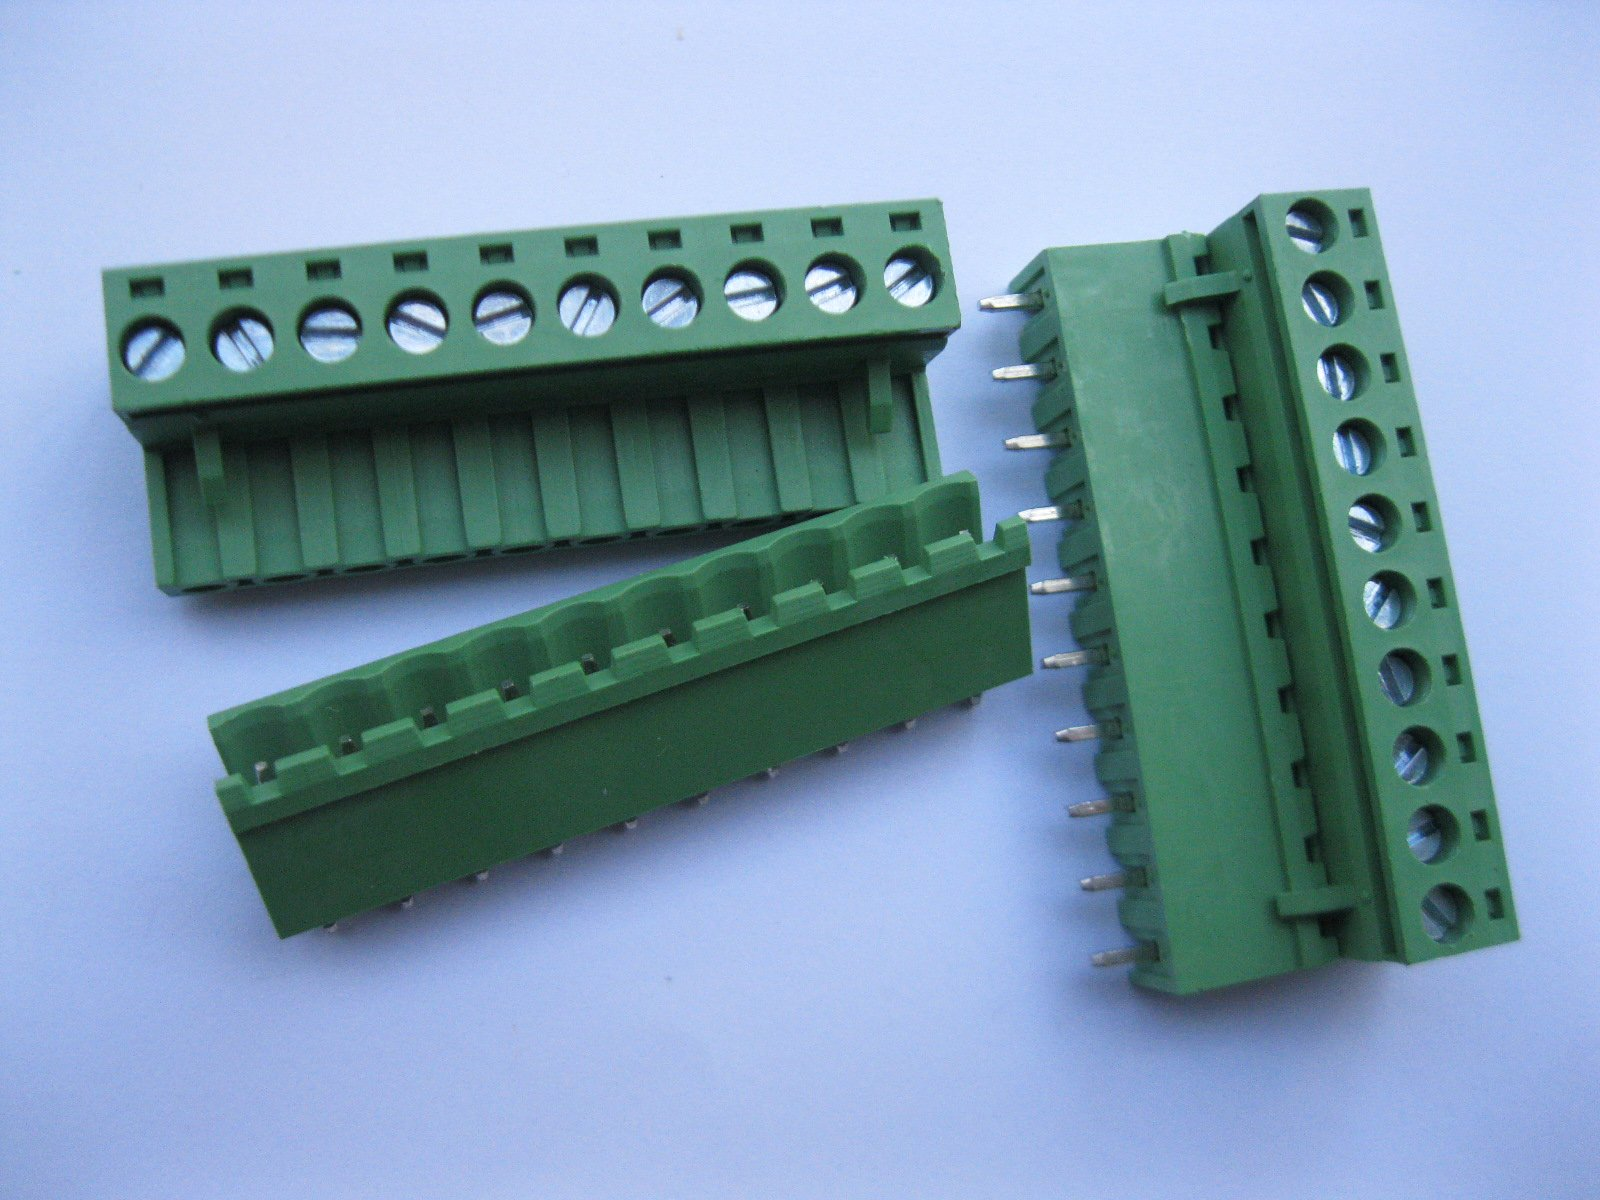 5 Pcs Pitch 5.08mm Straight 10way/pin Screw Terminal Block Connector w/ Straight-pin Green Color Pluggable Type Skywalking